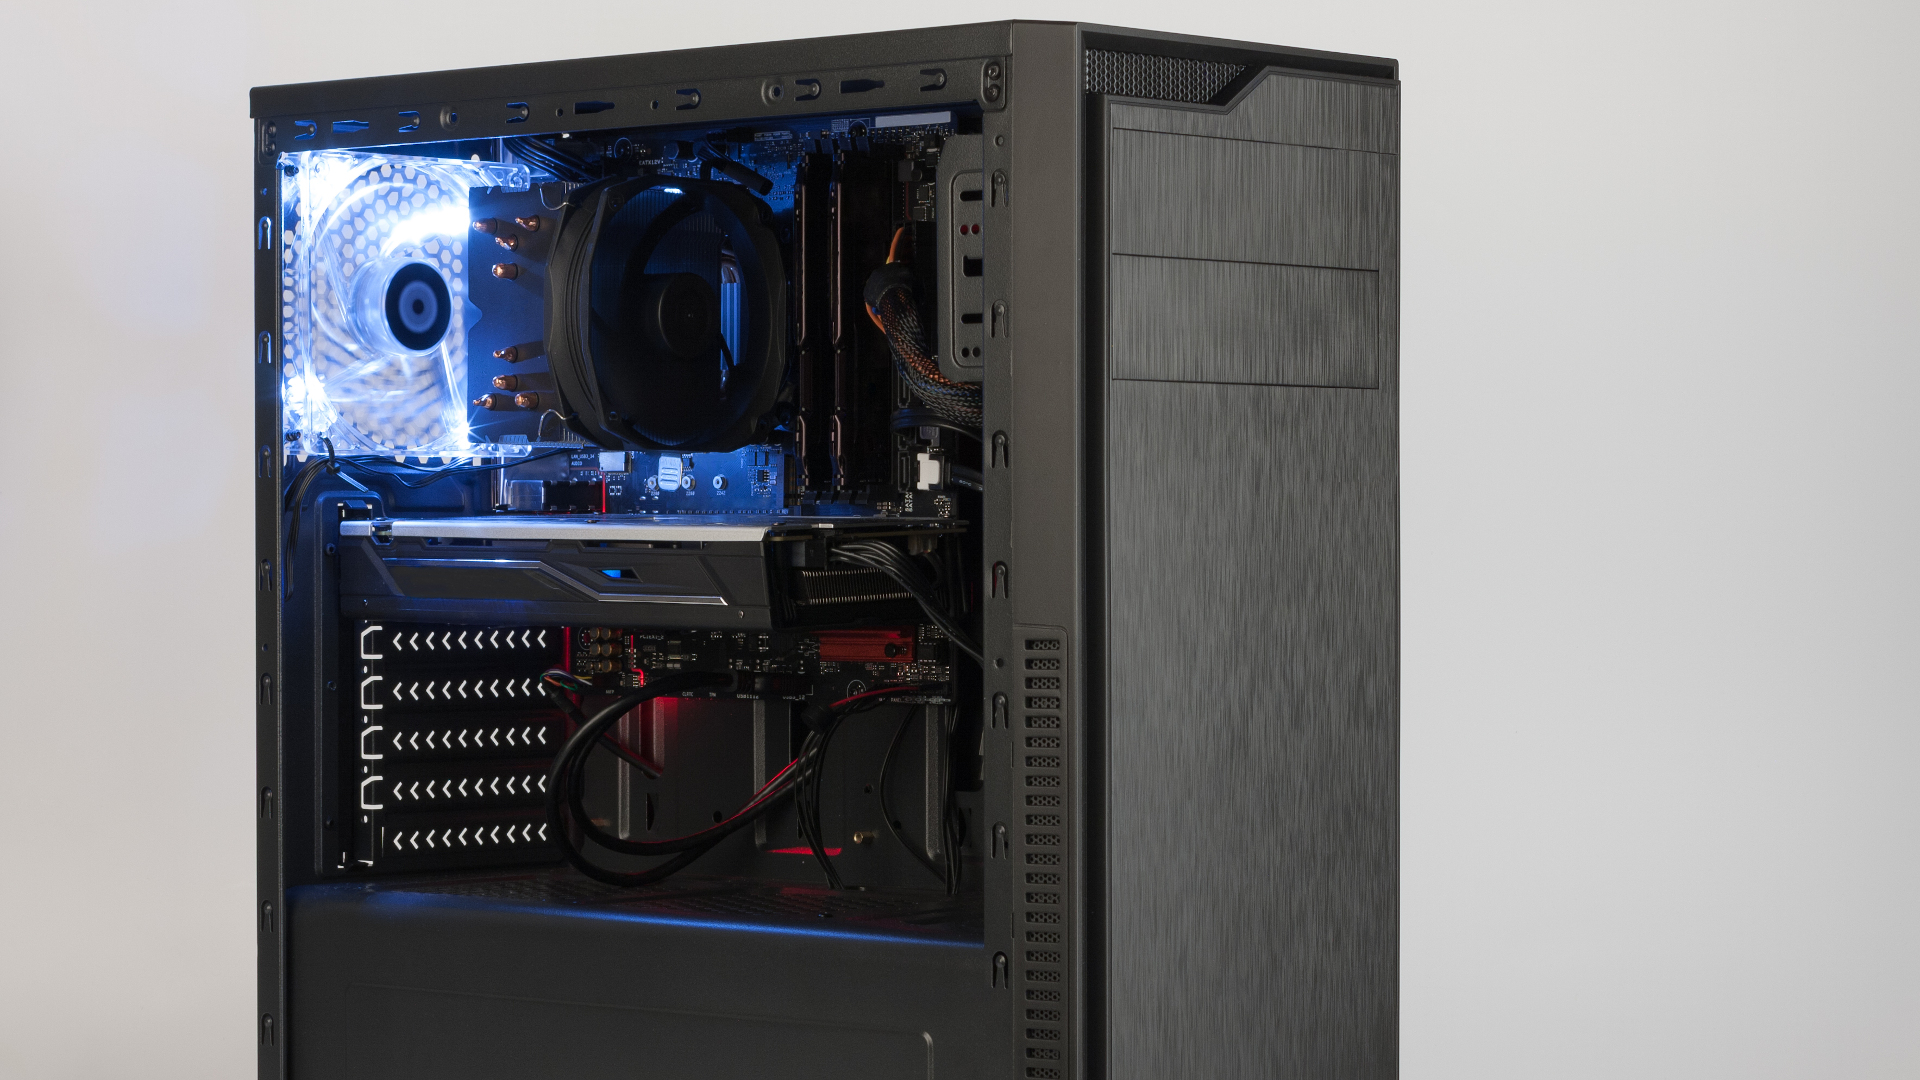 Desktop PC with side panel removed